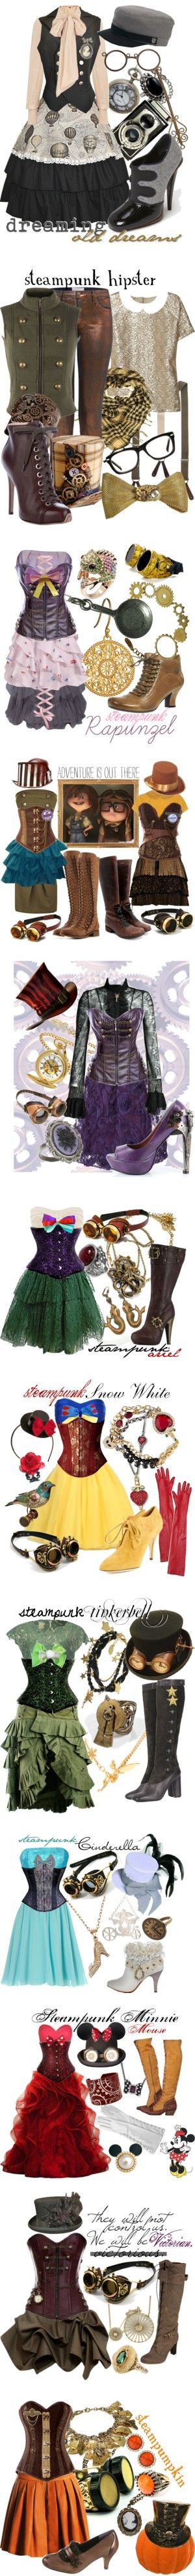 """""""Steampunk"""" by princesschandler ❤ liked on Polyvore - not sure if id ever wear any of this but i love the idea, and steampunk disney princesses? ! Hell yeah!"""